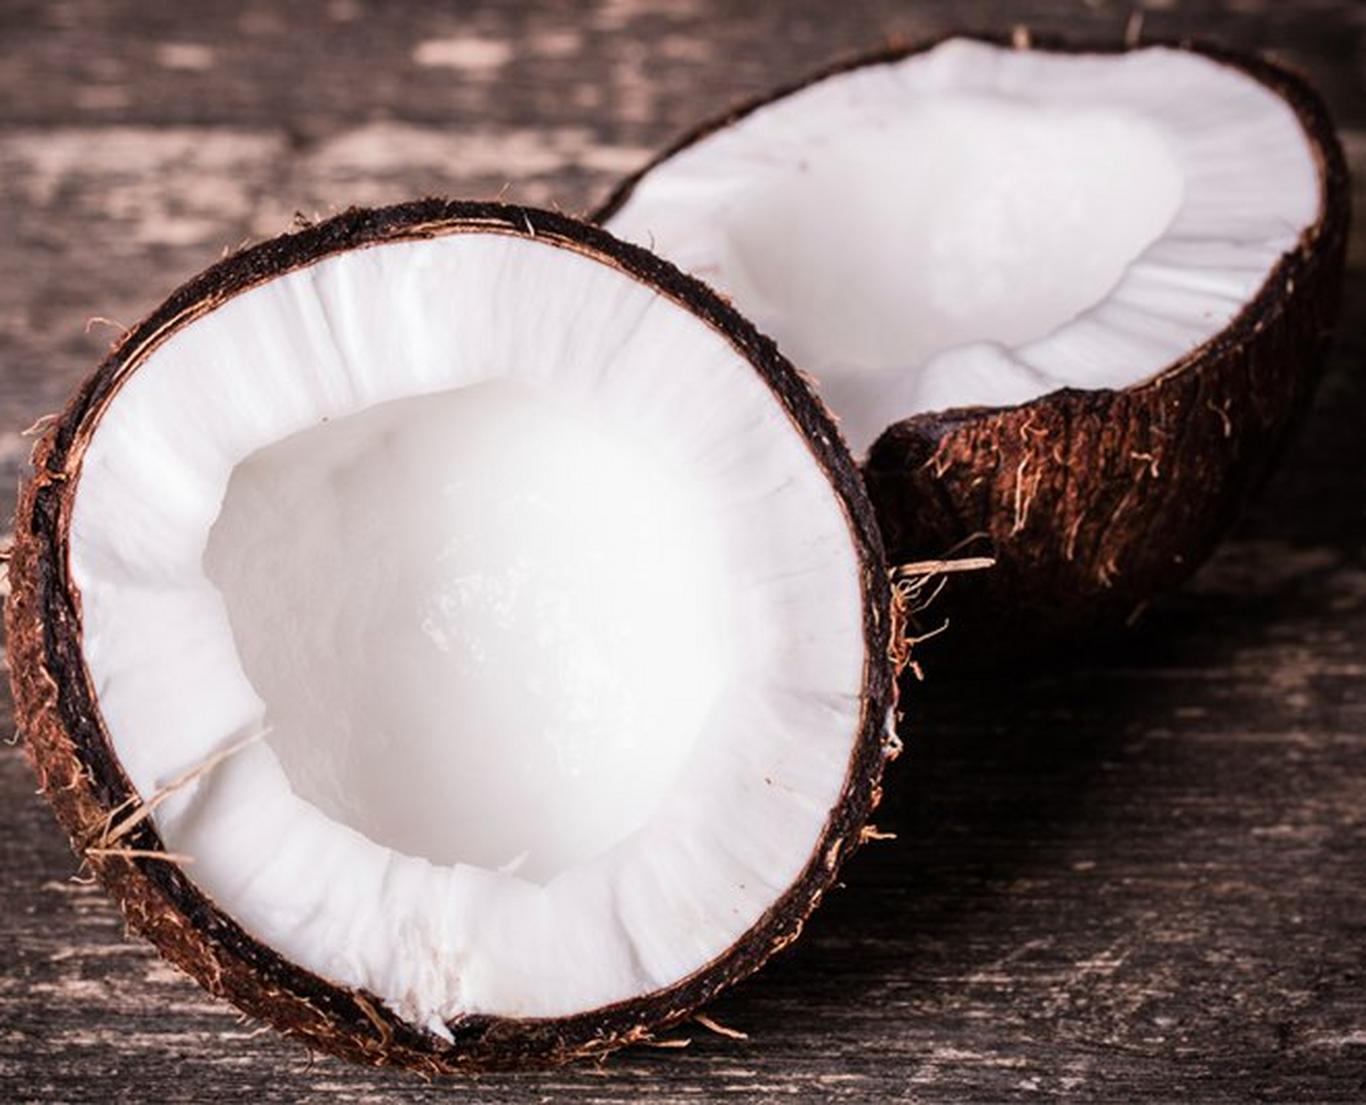 Coconut oil is a beauty food that also has weight management benefits.